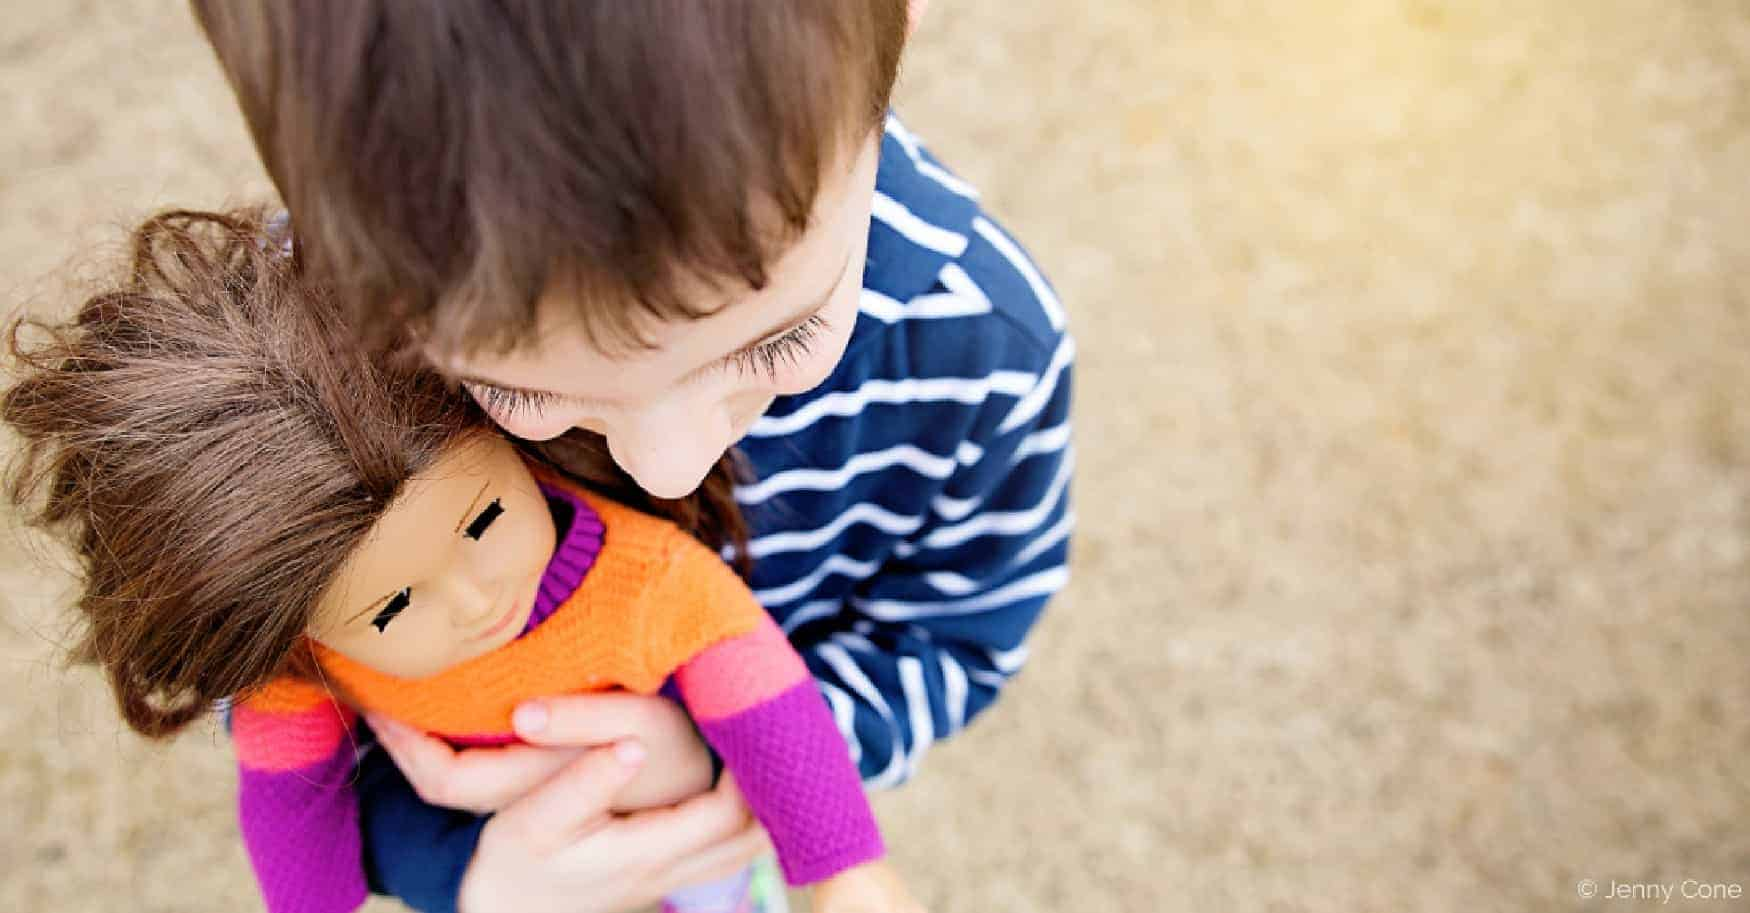 Gender Stereotypes: Why Aren't Boys Allowed to Play With Dolls